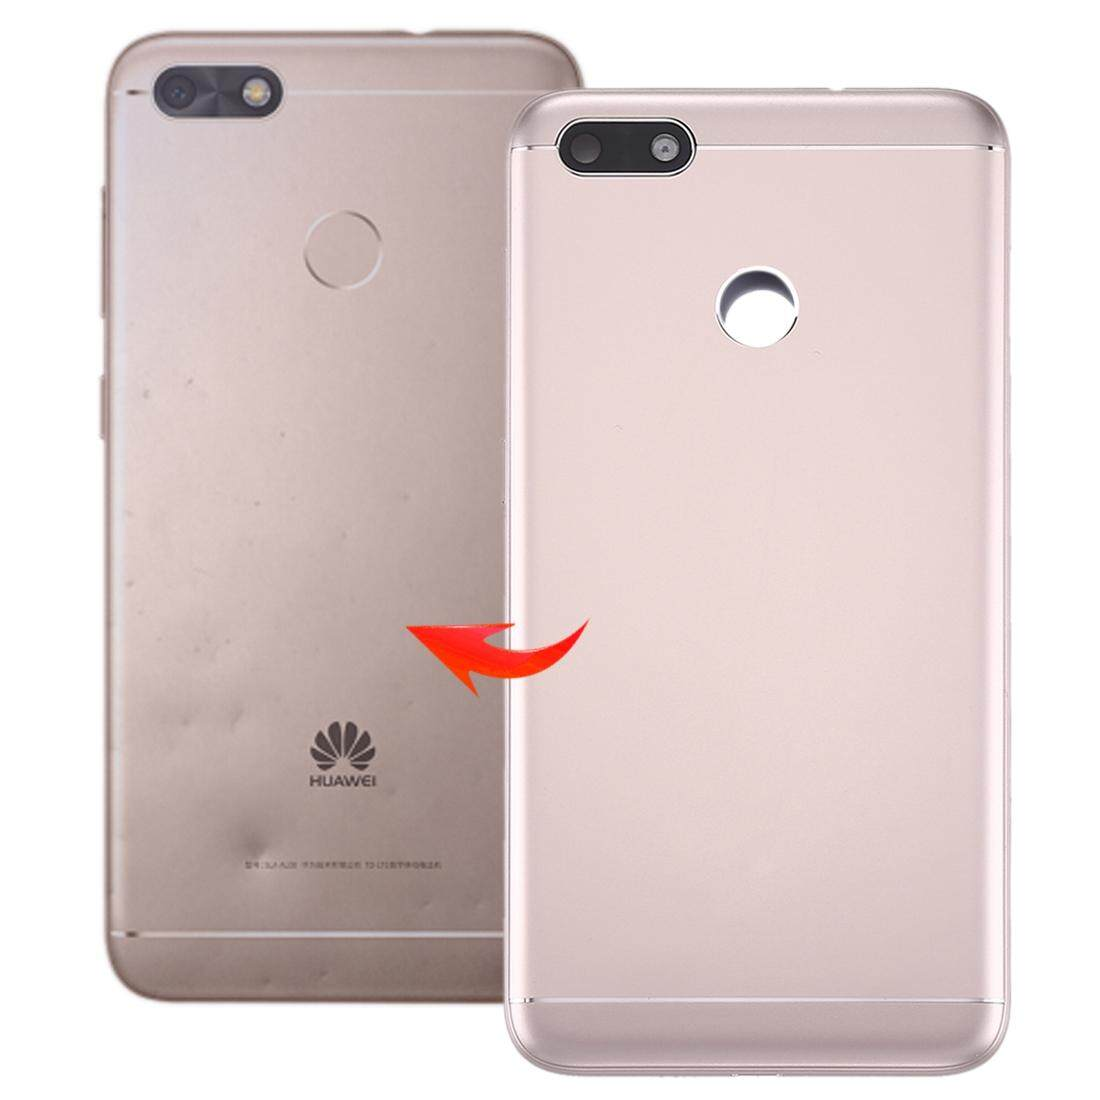 for Huawei Enjoy 7 / P9 Lite Mini / Y6 Pro (2017) Back Cover(Gold)